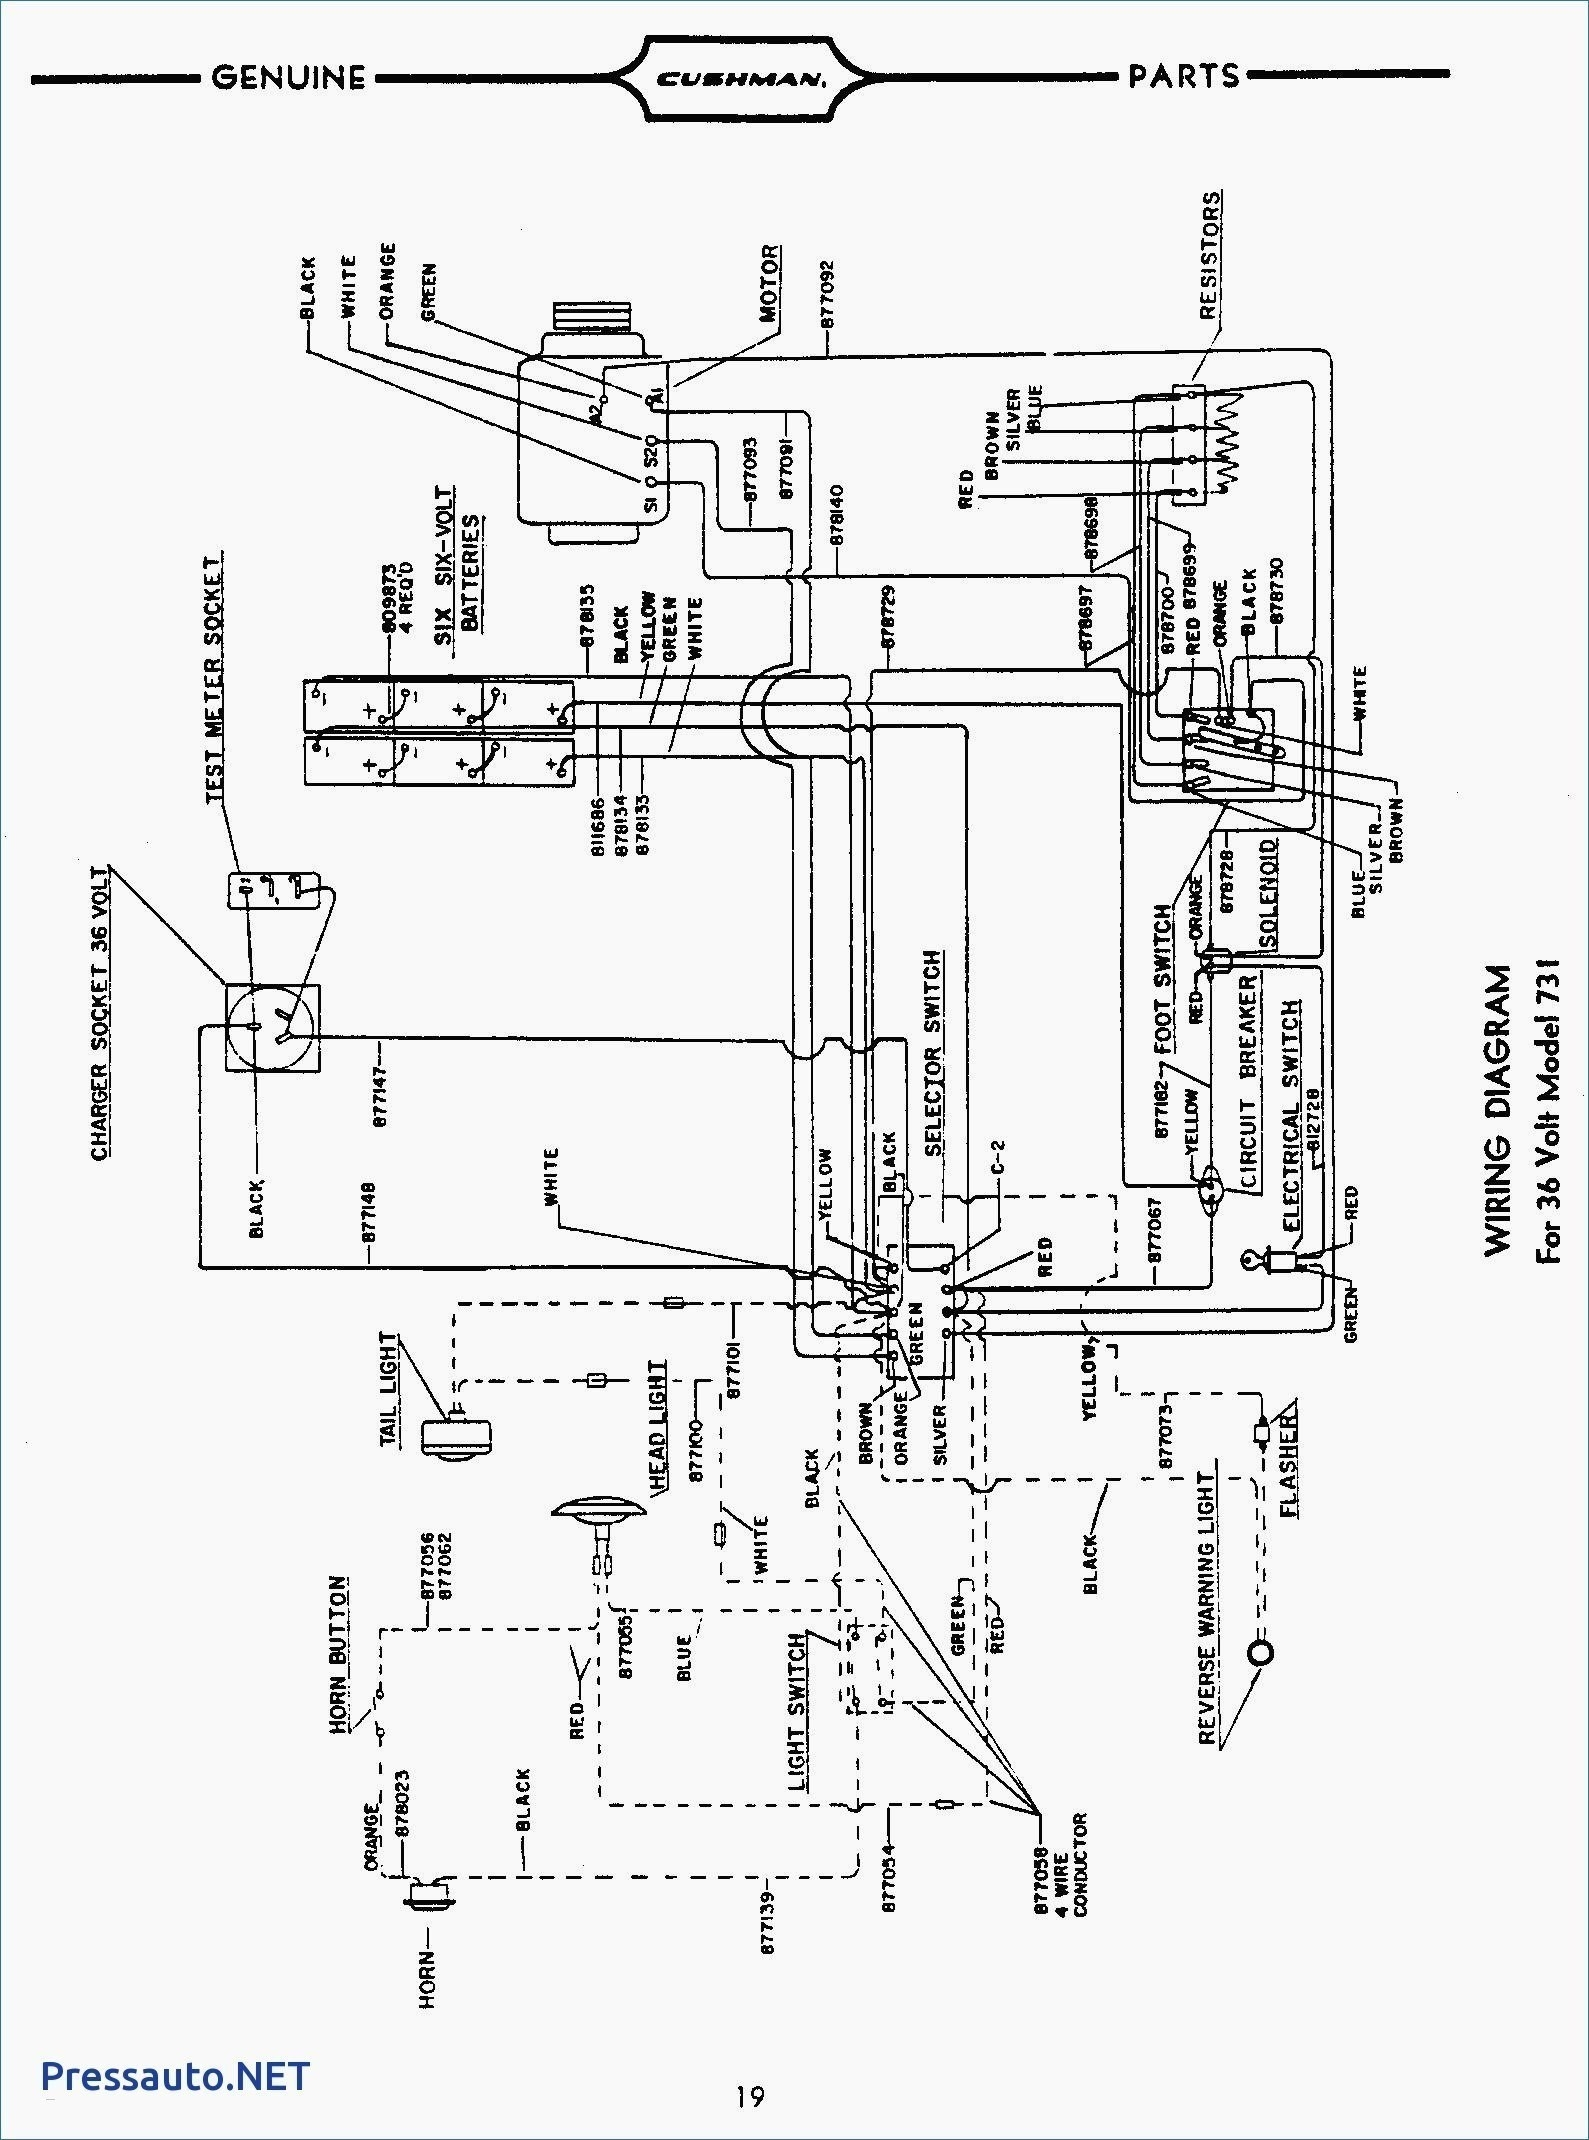 Diagram Wiring Diagrams Ezgo 36 Volt Full Version Hd